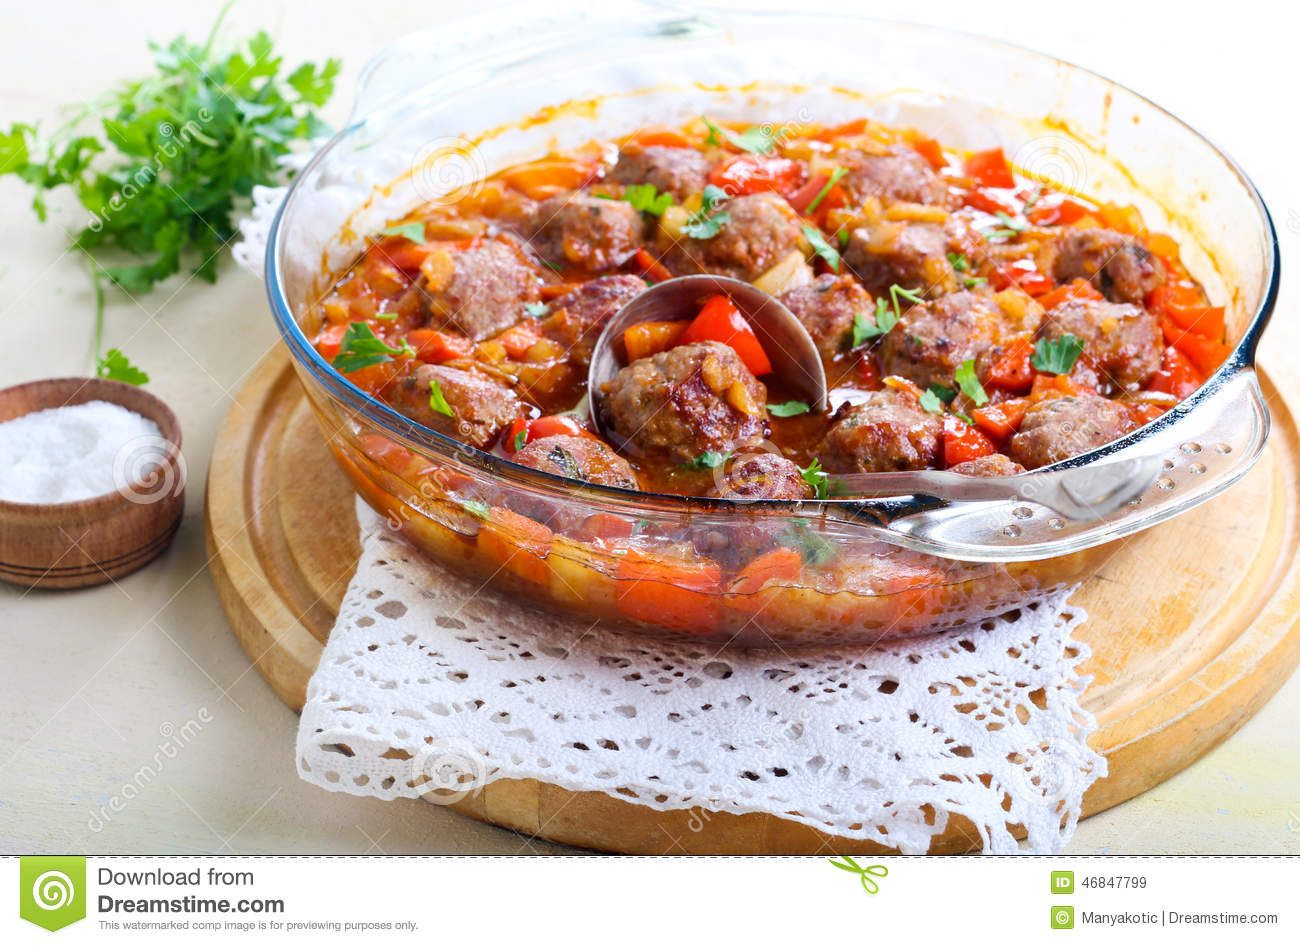 Sweet and sour meatballs with vegetables.